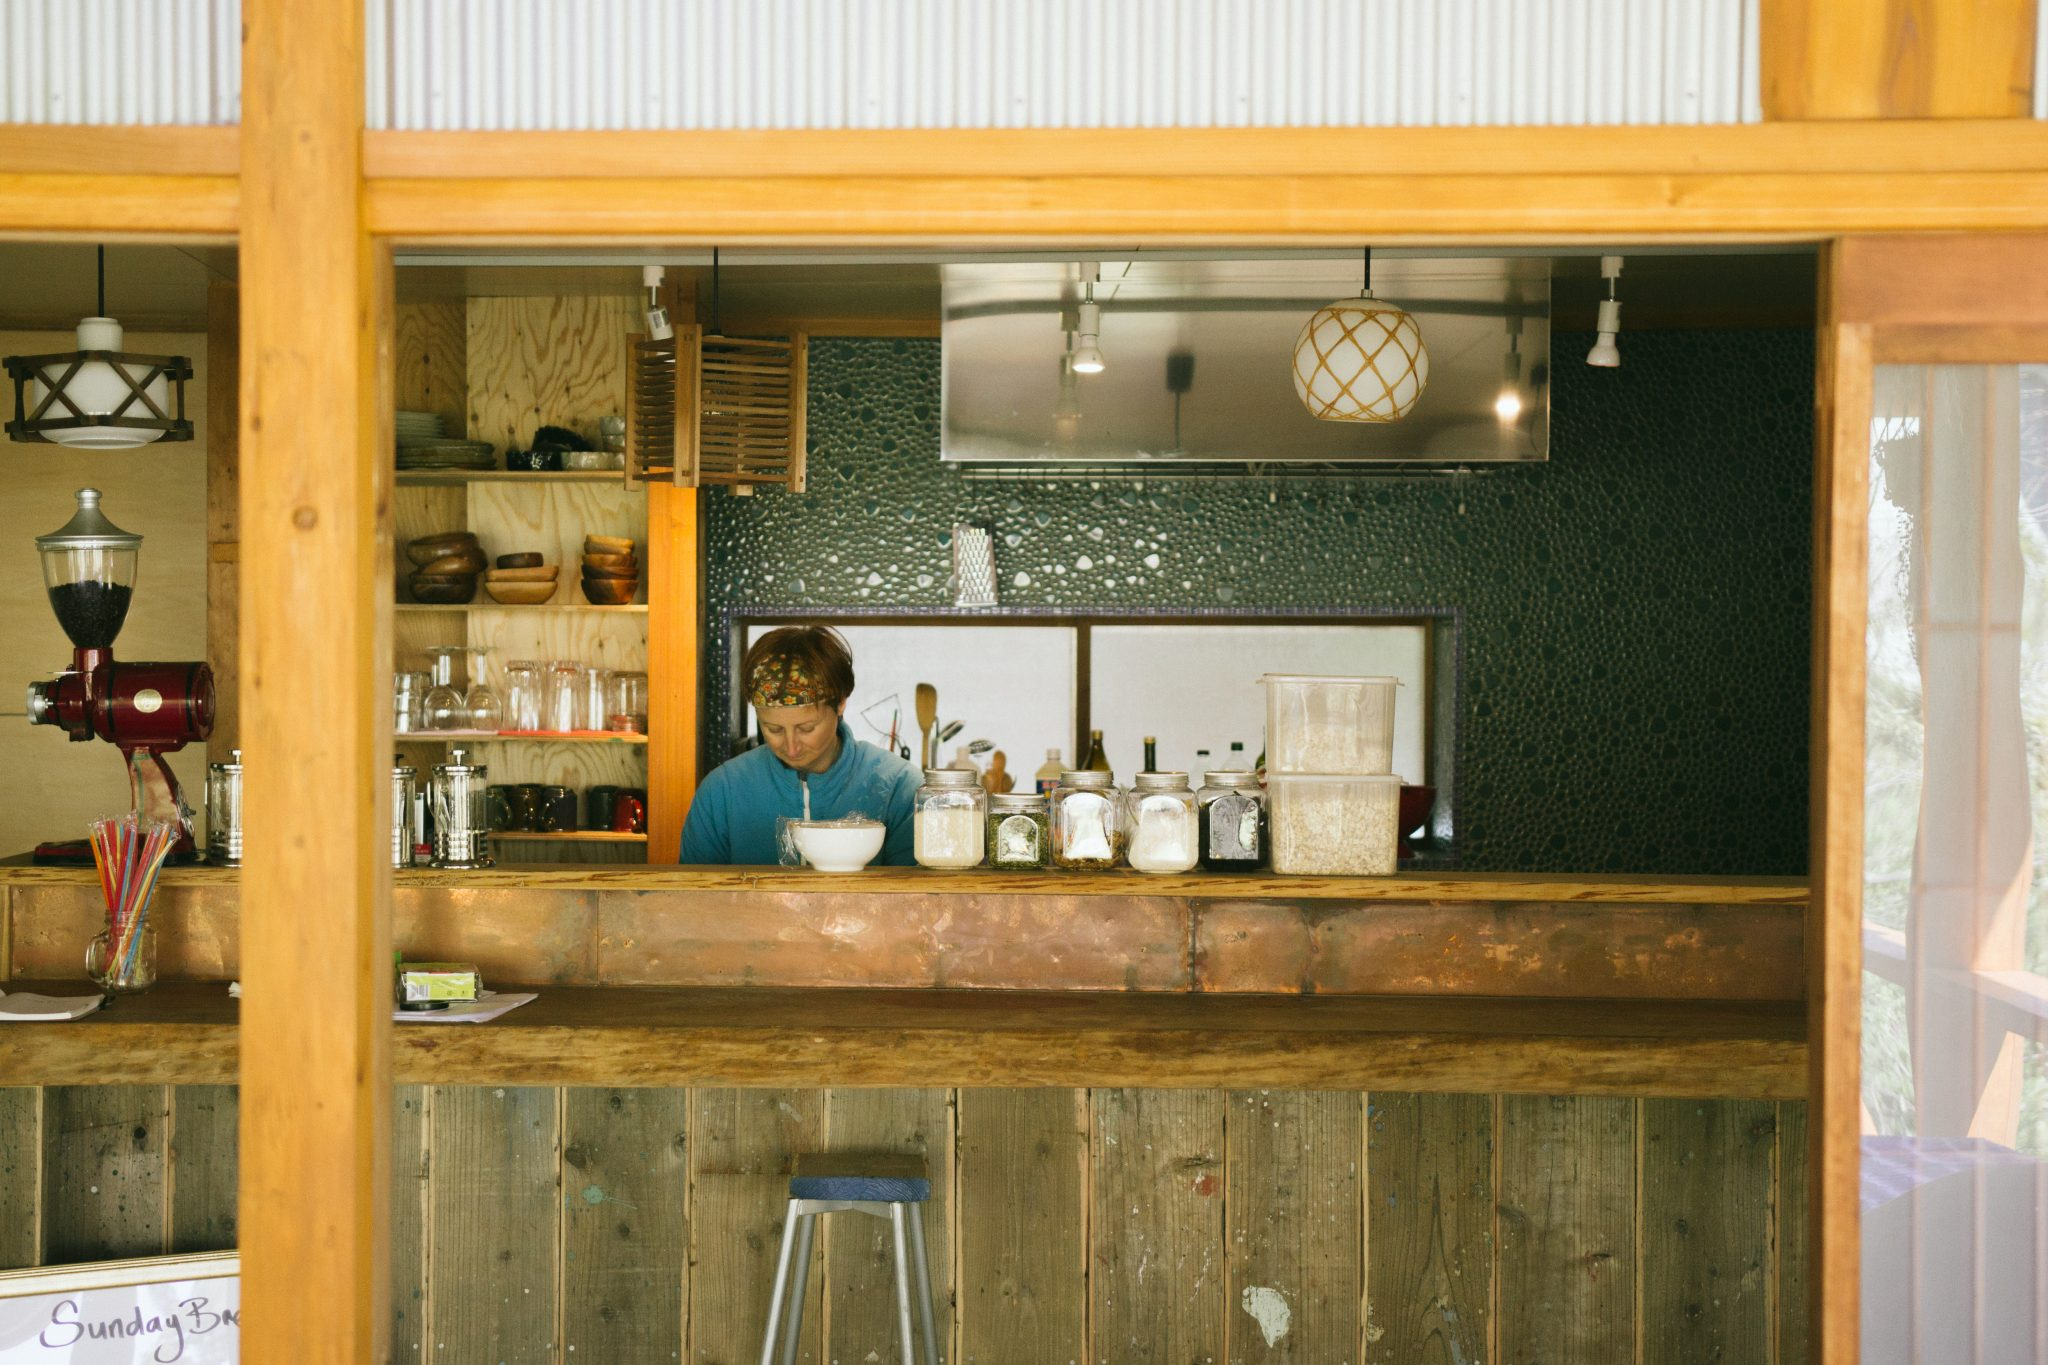 The cafe counter at retreat wabi-sabi